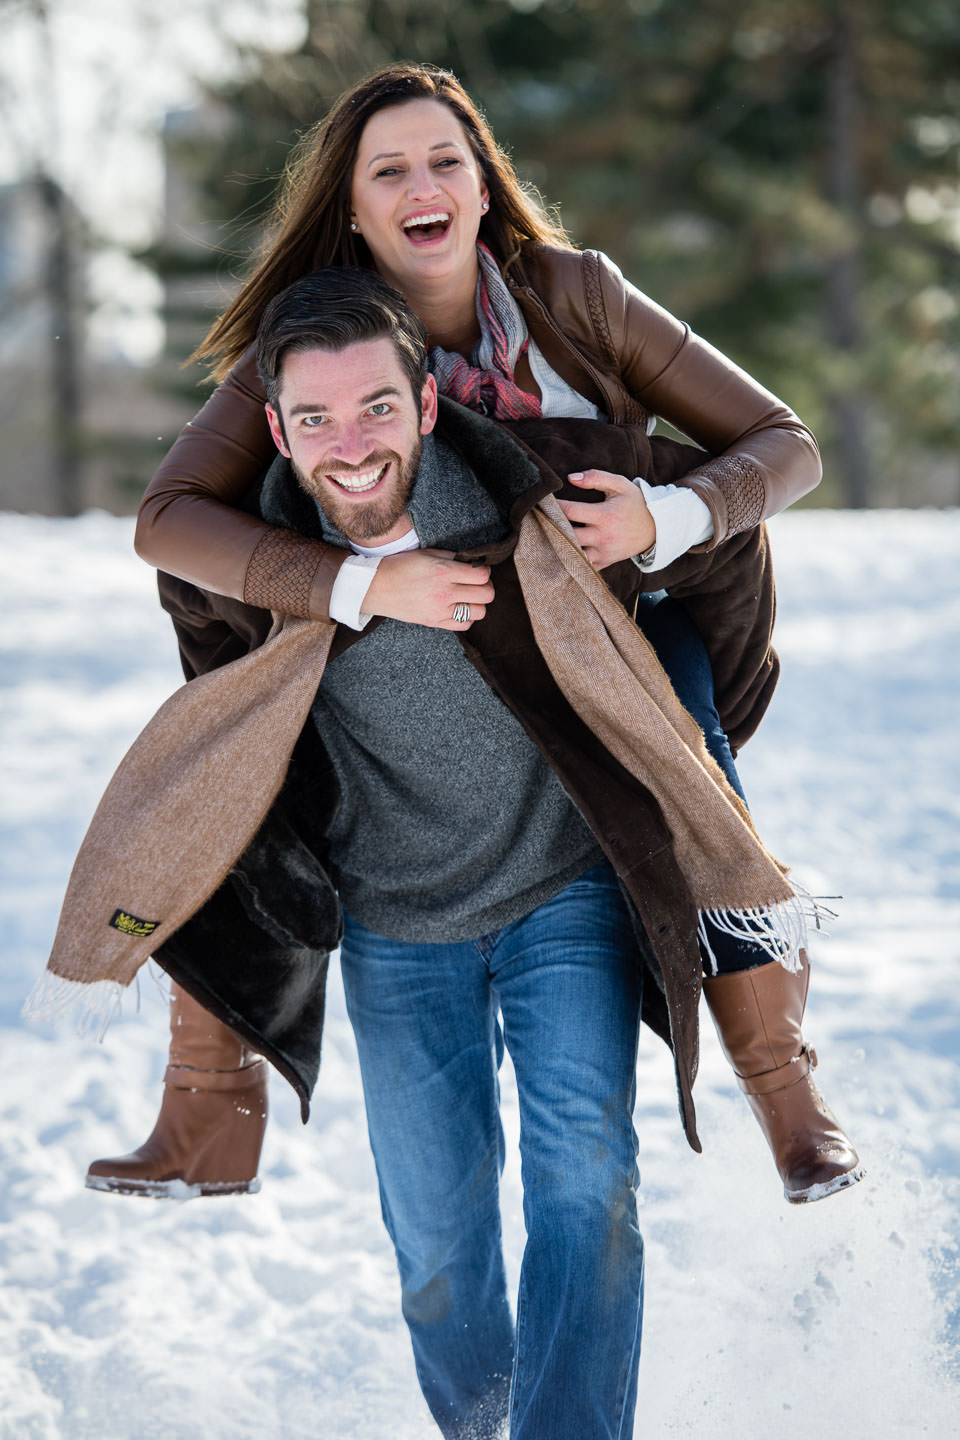 girl jumped on guys shoulders after proposal during engagement session happy she said yes